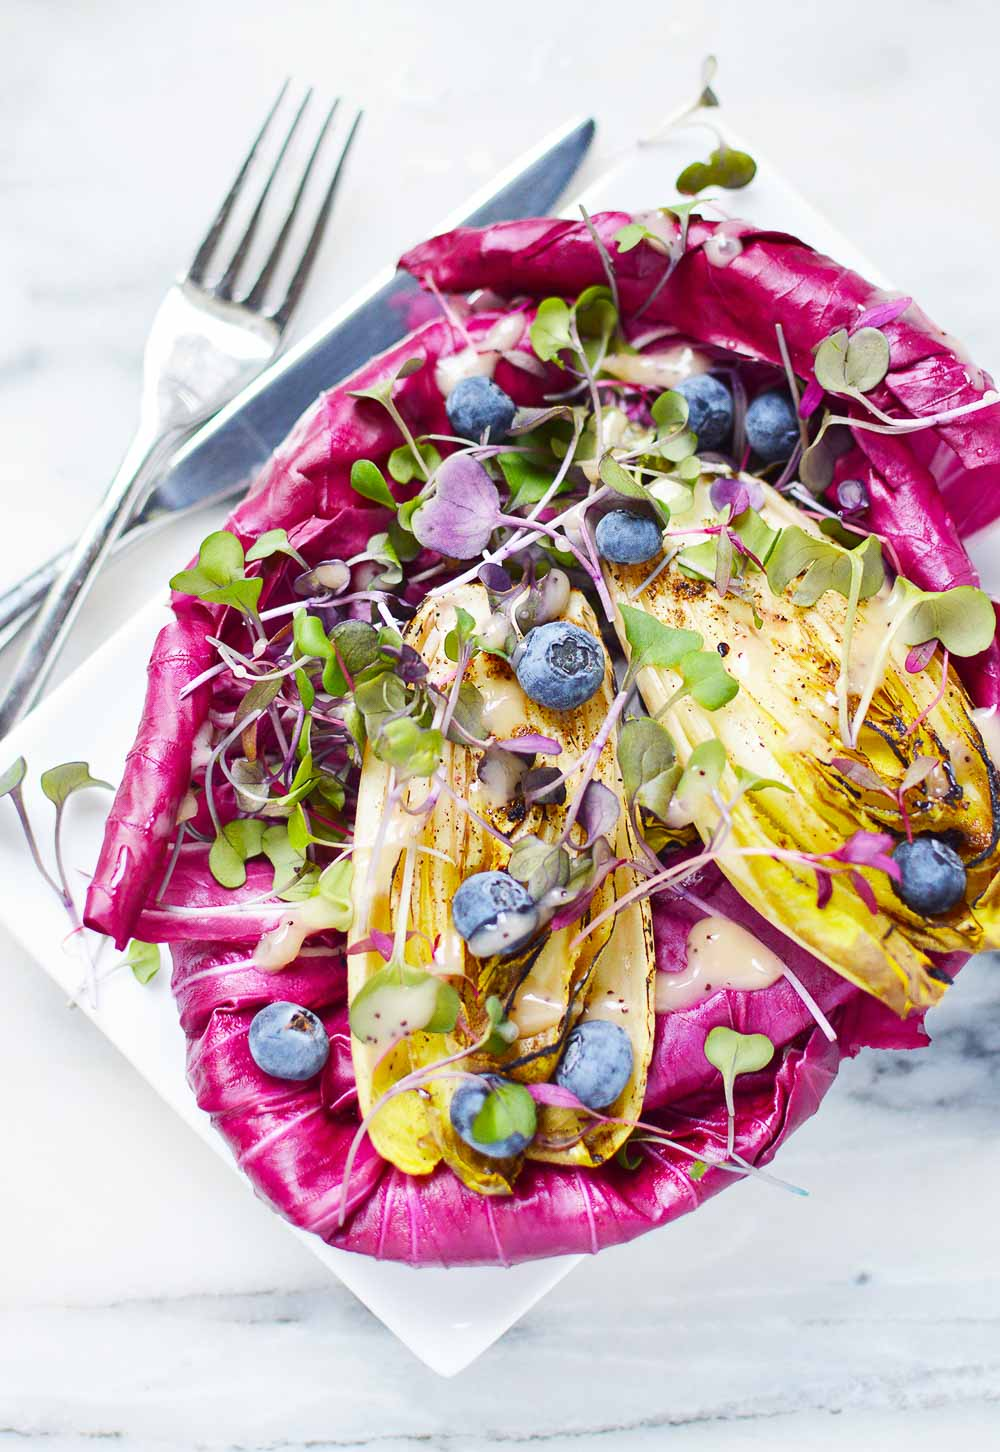 This Radicchio and Endive Salad with Fresh Berries balances bitter flavors with sweetness from berries. So fresh, refreshing, and colorful! Enjoy with a lean protein for a healthy meal.